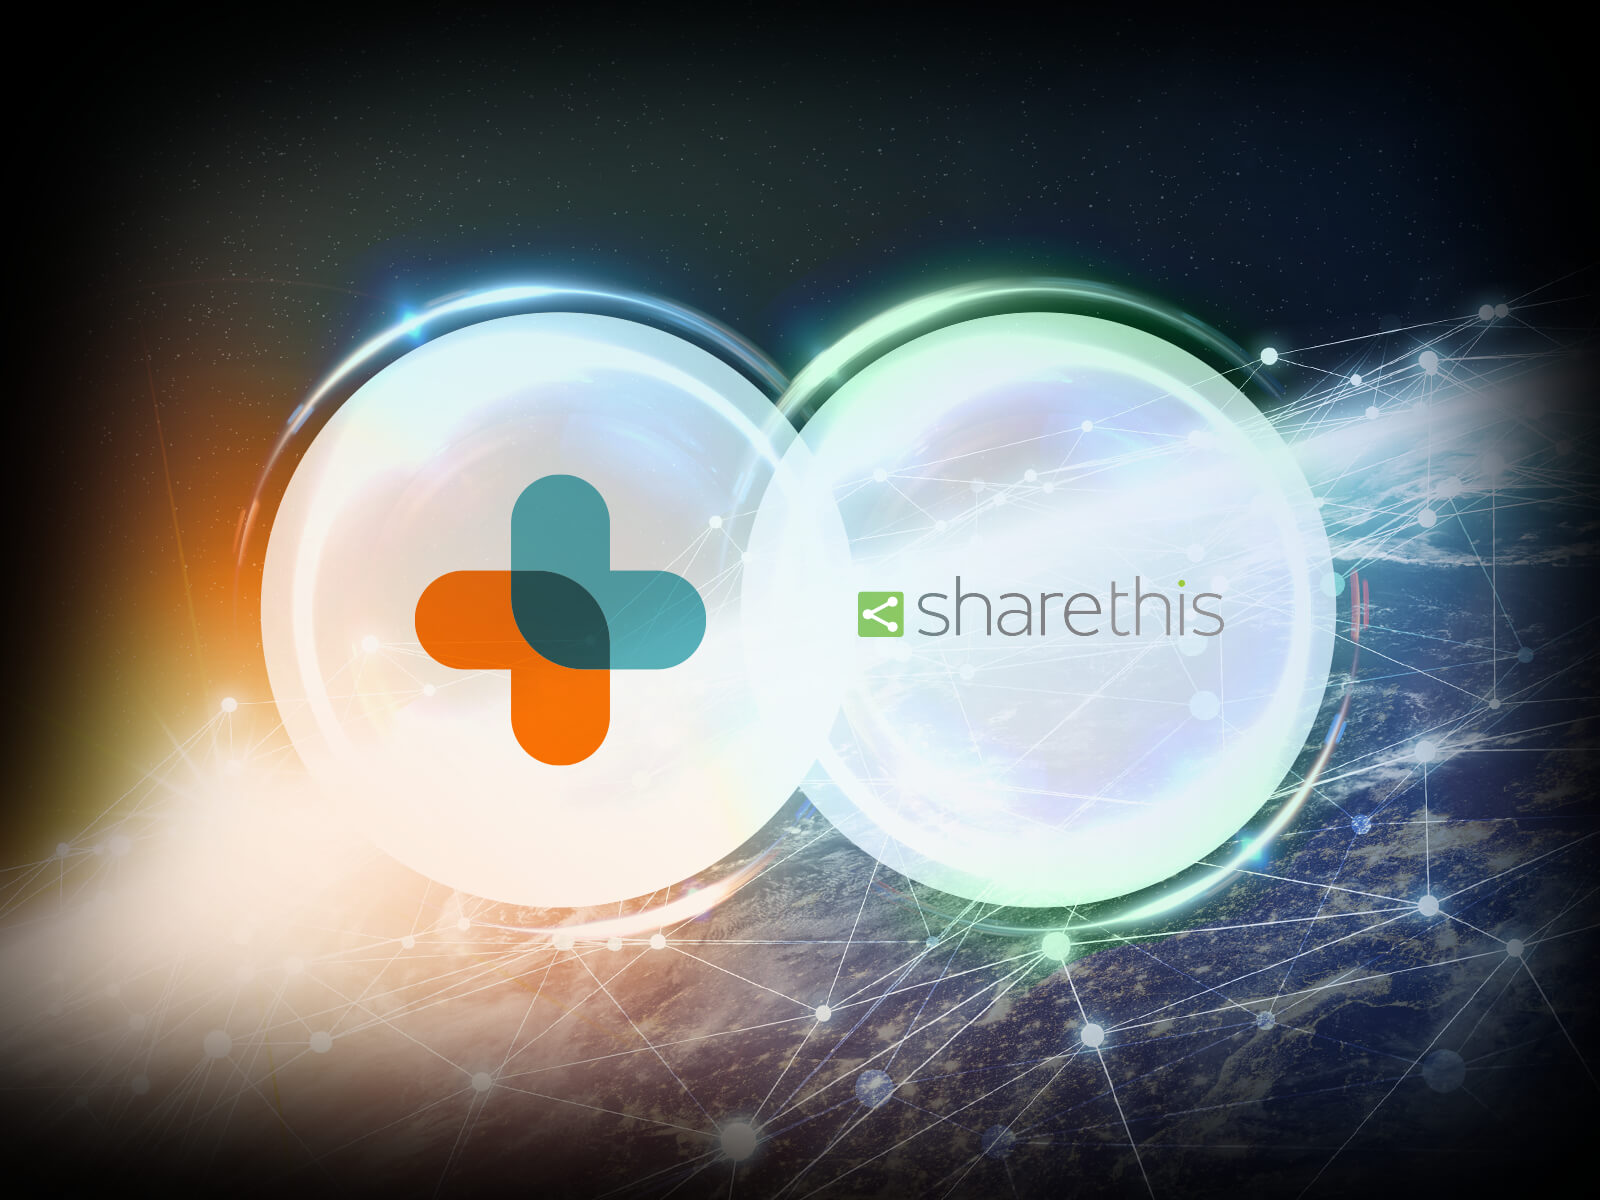 ShareThis makes audience data available through InfoSum